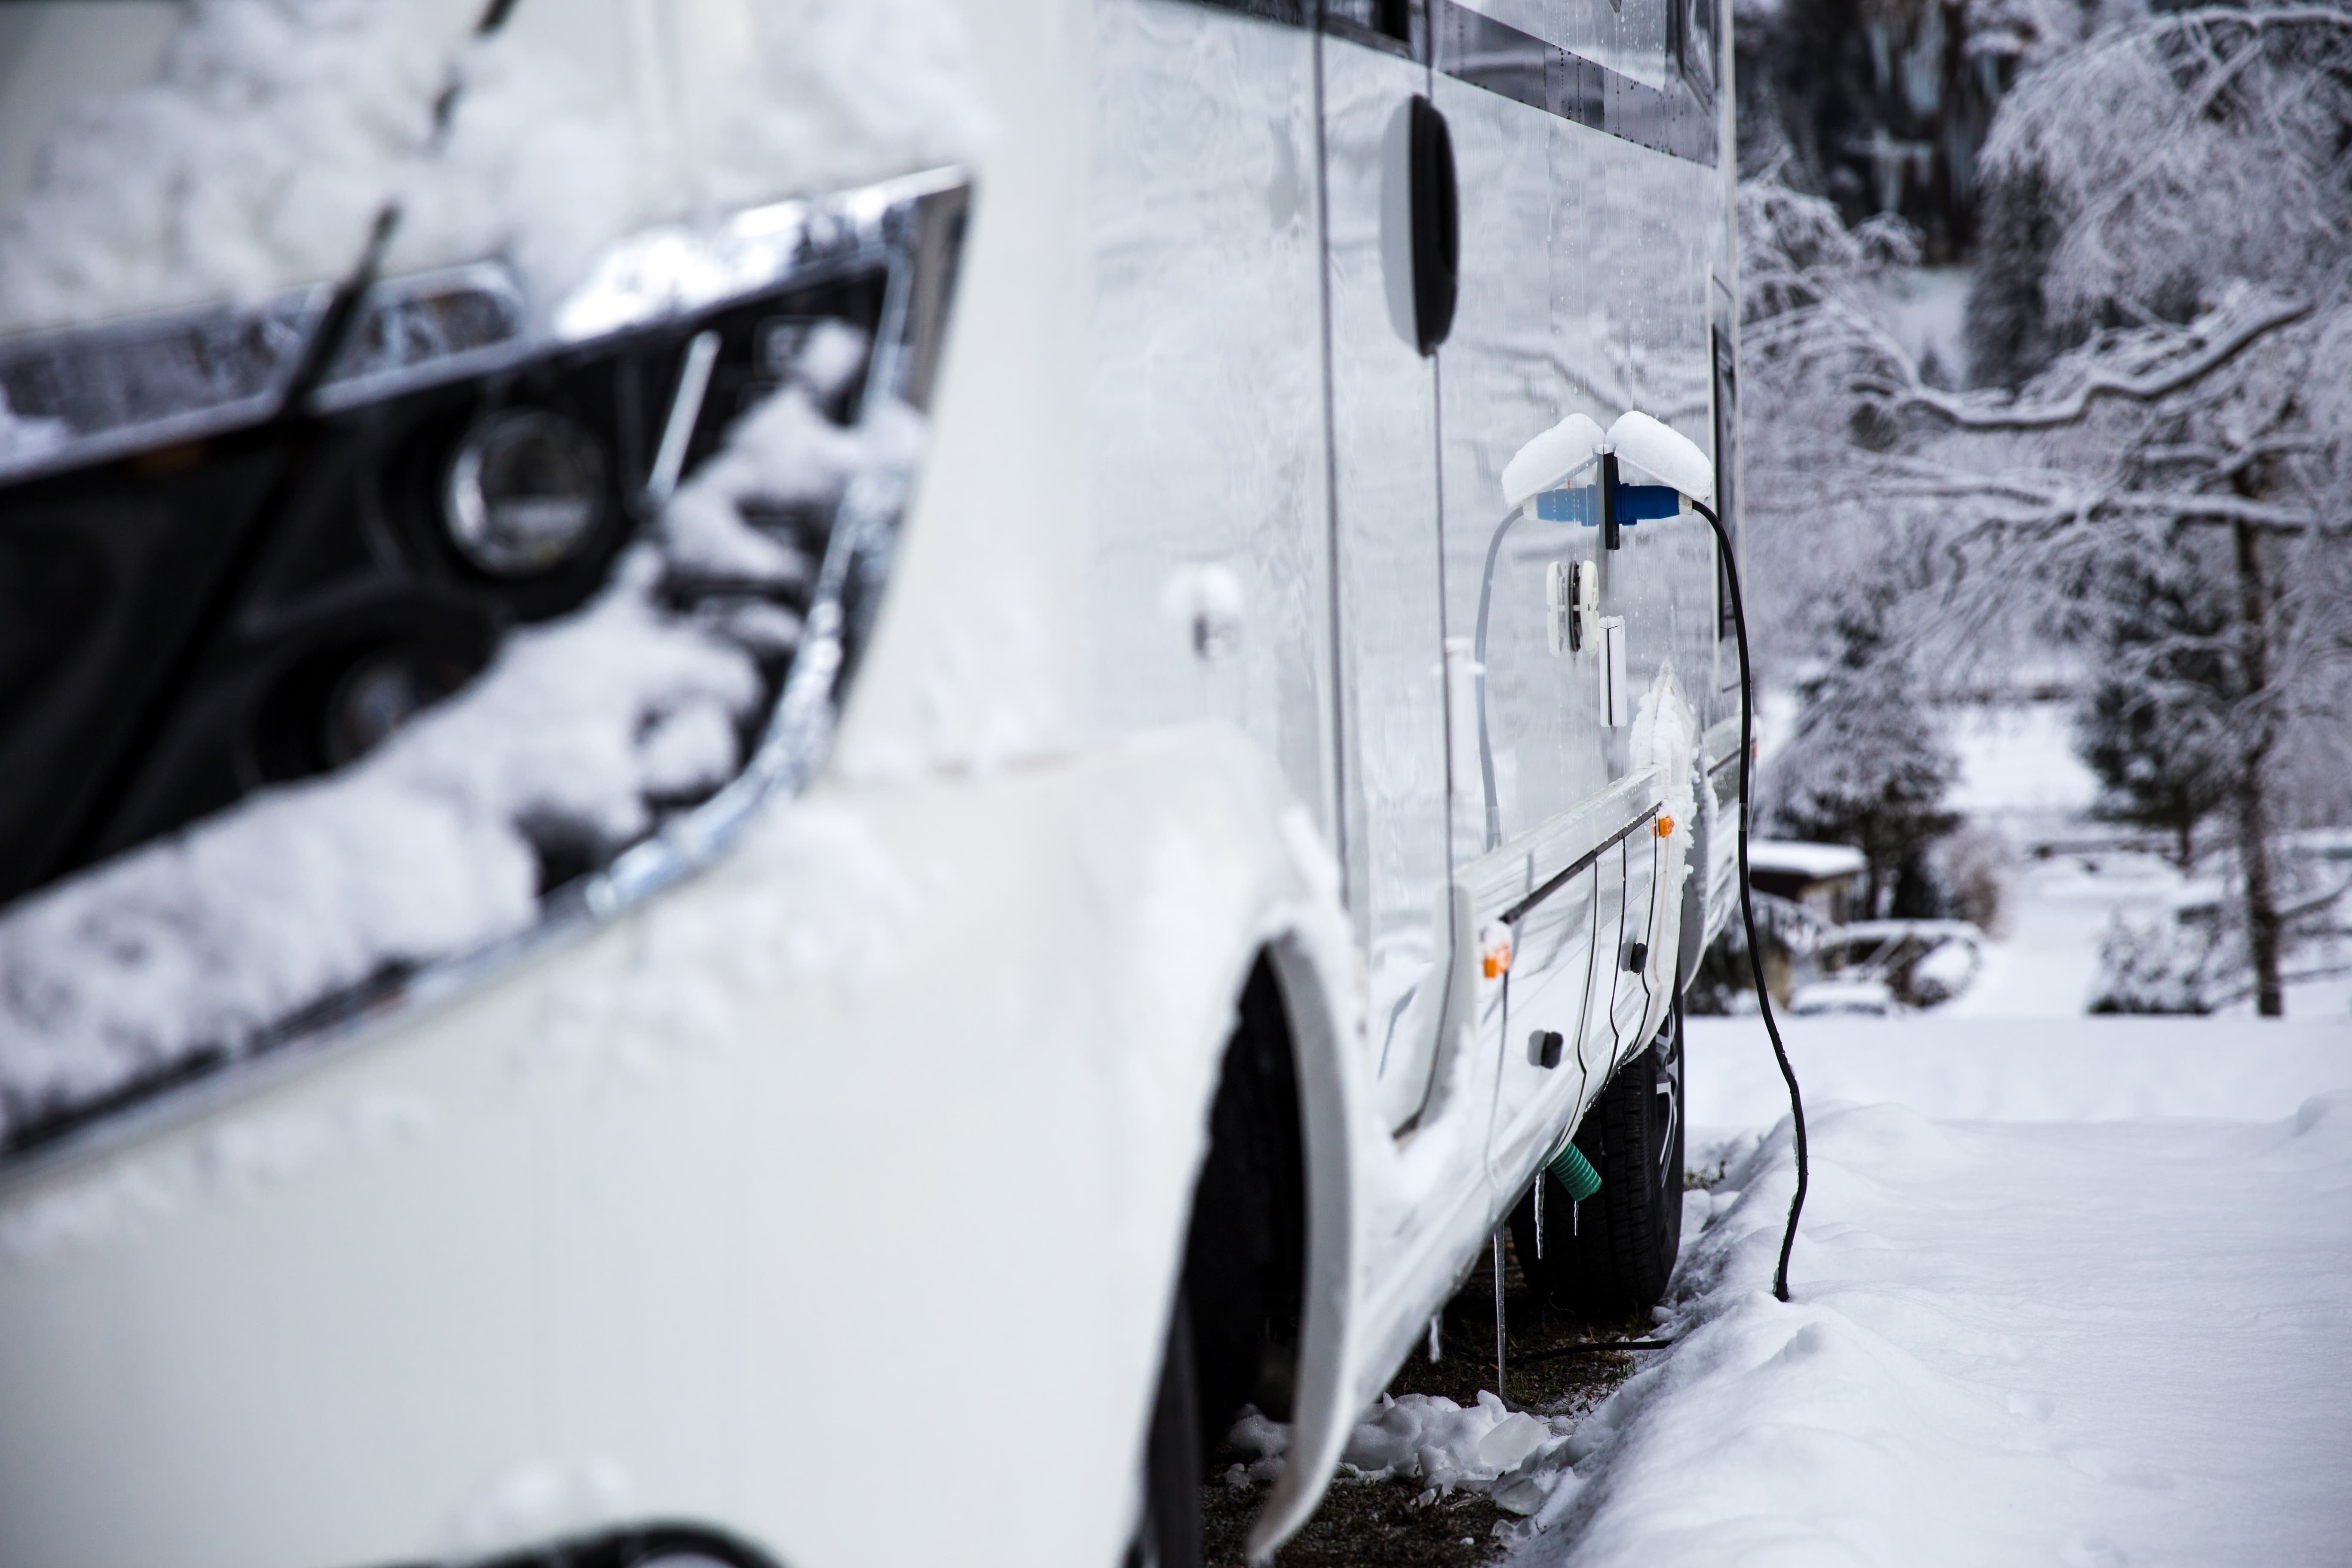 rv camped in the snow with electric input plugged in